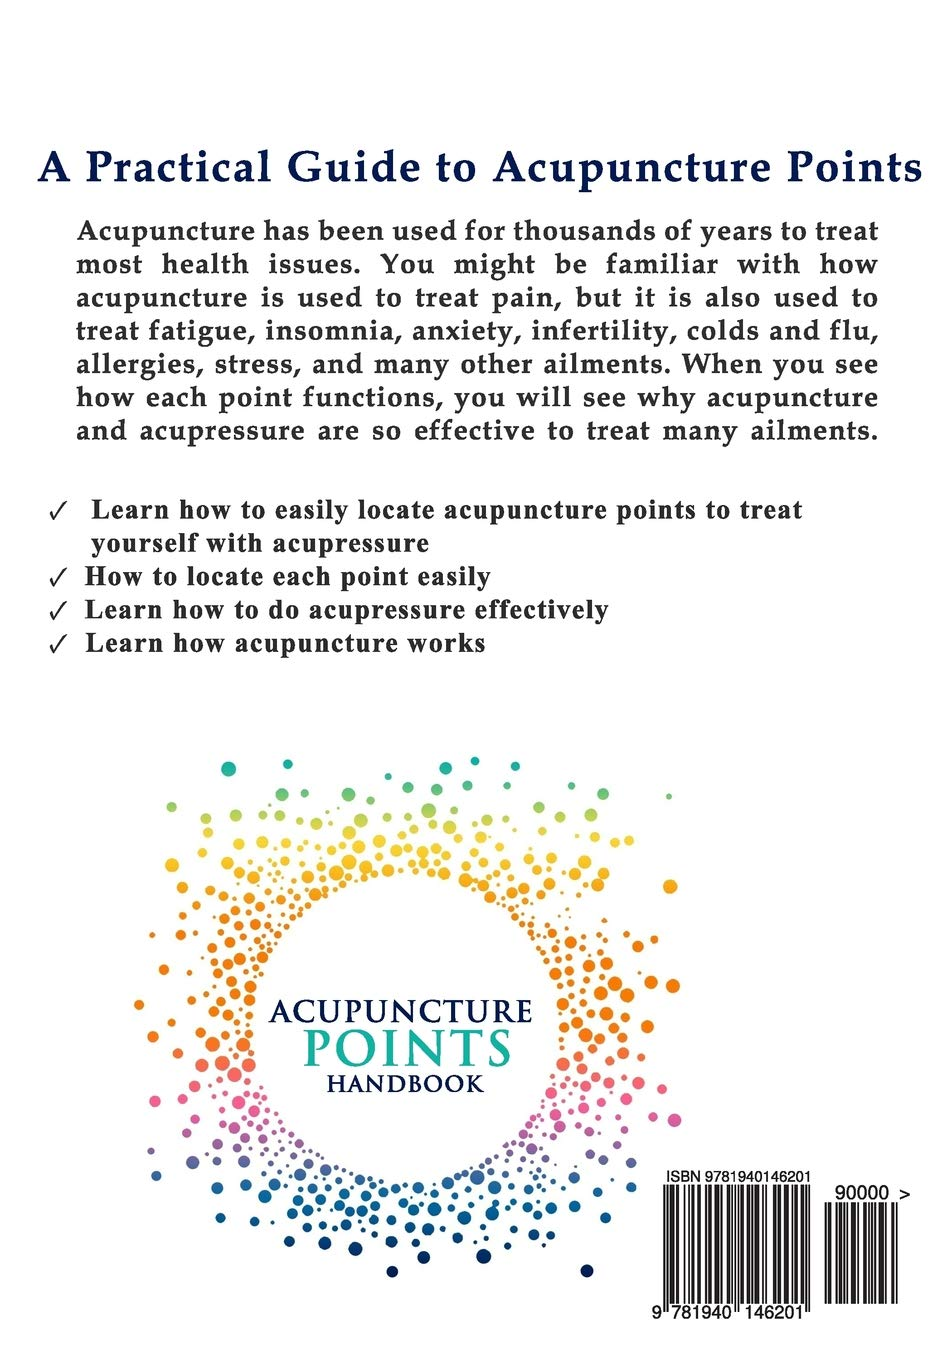 Acupuncture Points Handbook: A Patient's Guide to the